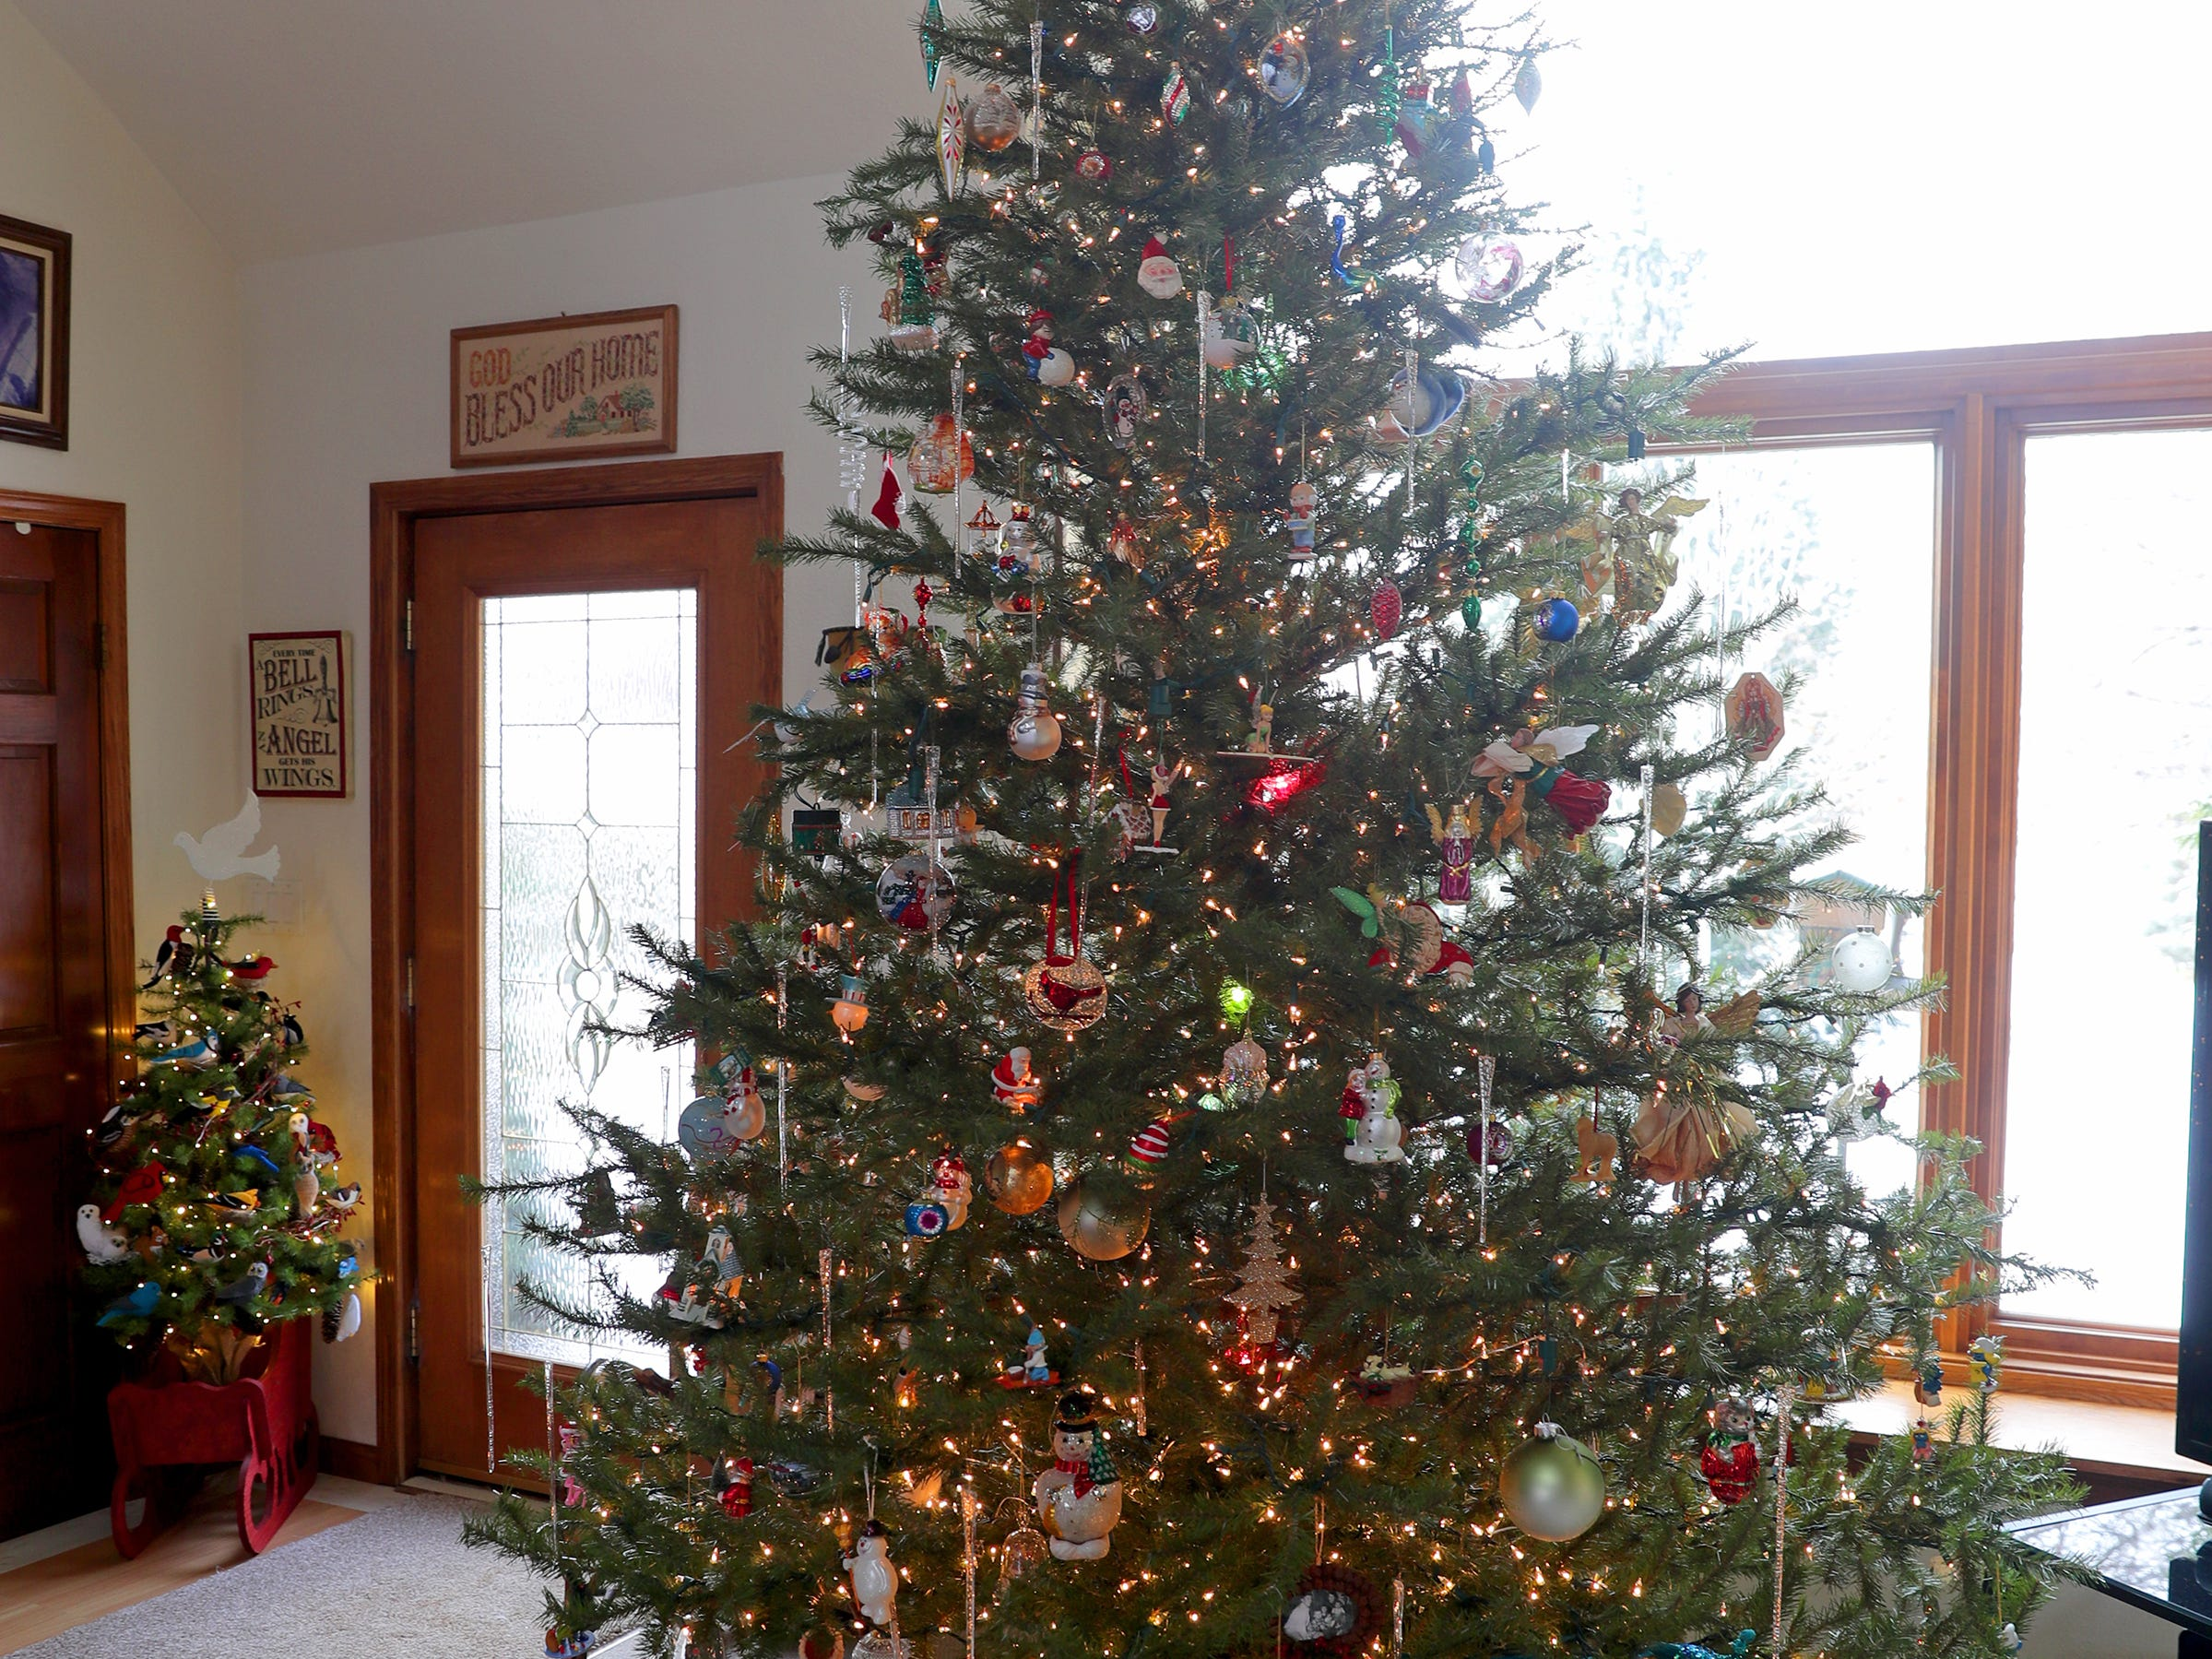 The largest of the trees is this 10-foot artificial tree in the living room. It's the one that gets all the sentimental ornaments.